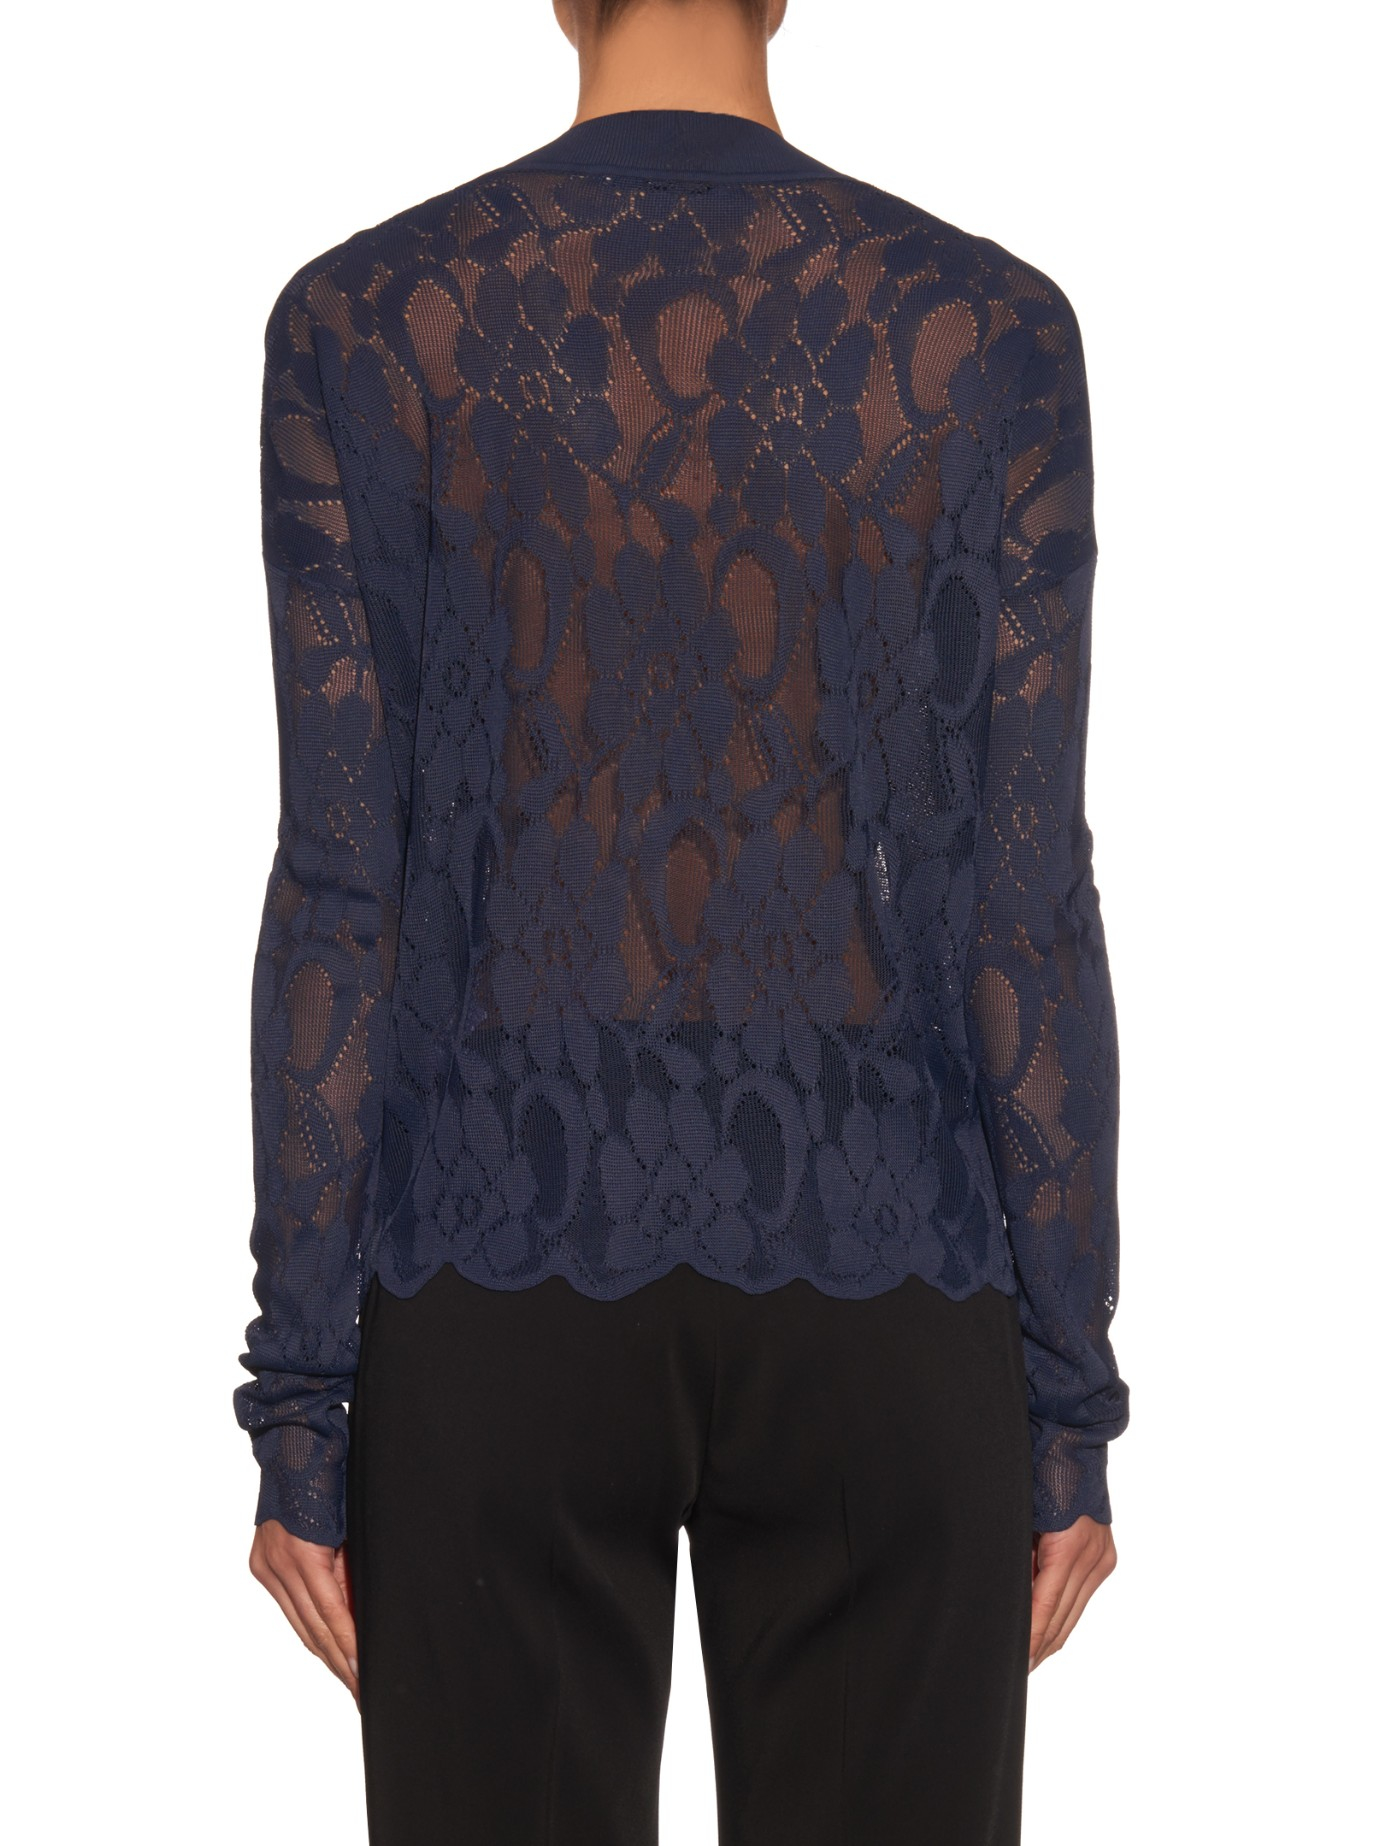 Christopher kane V-neck Lace Sweater in Blue | Lyst